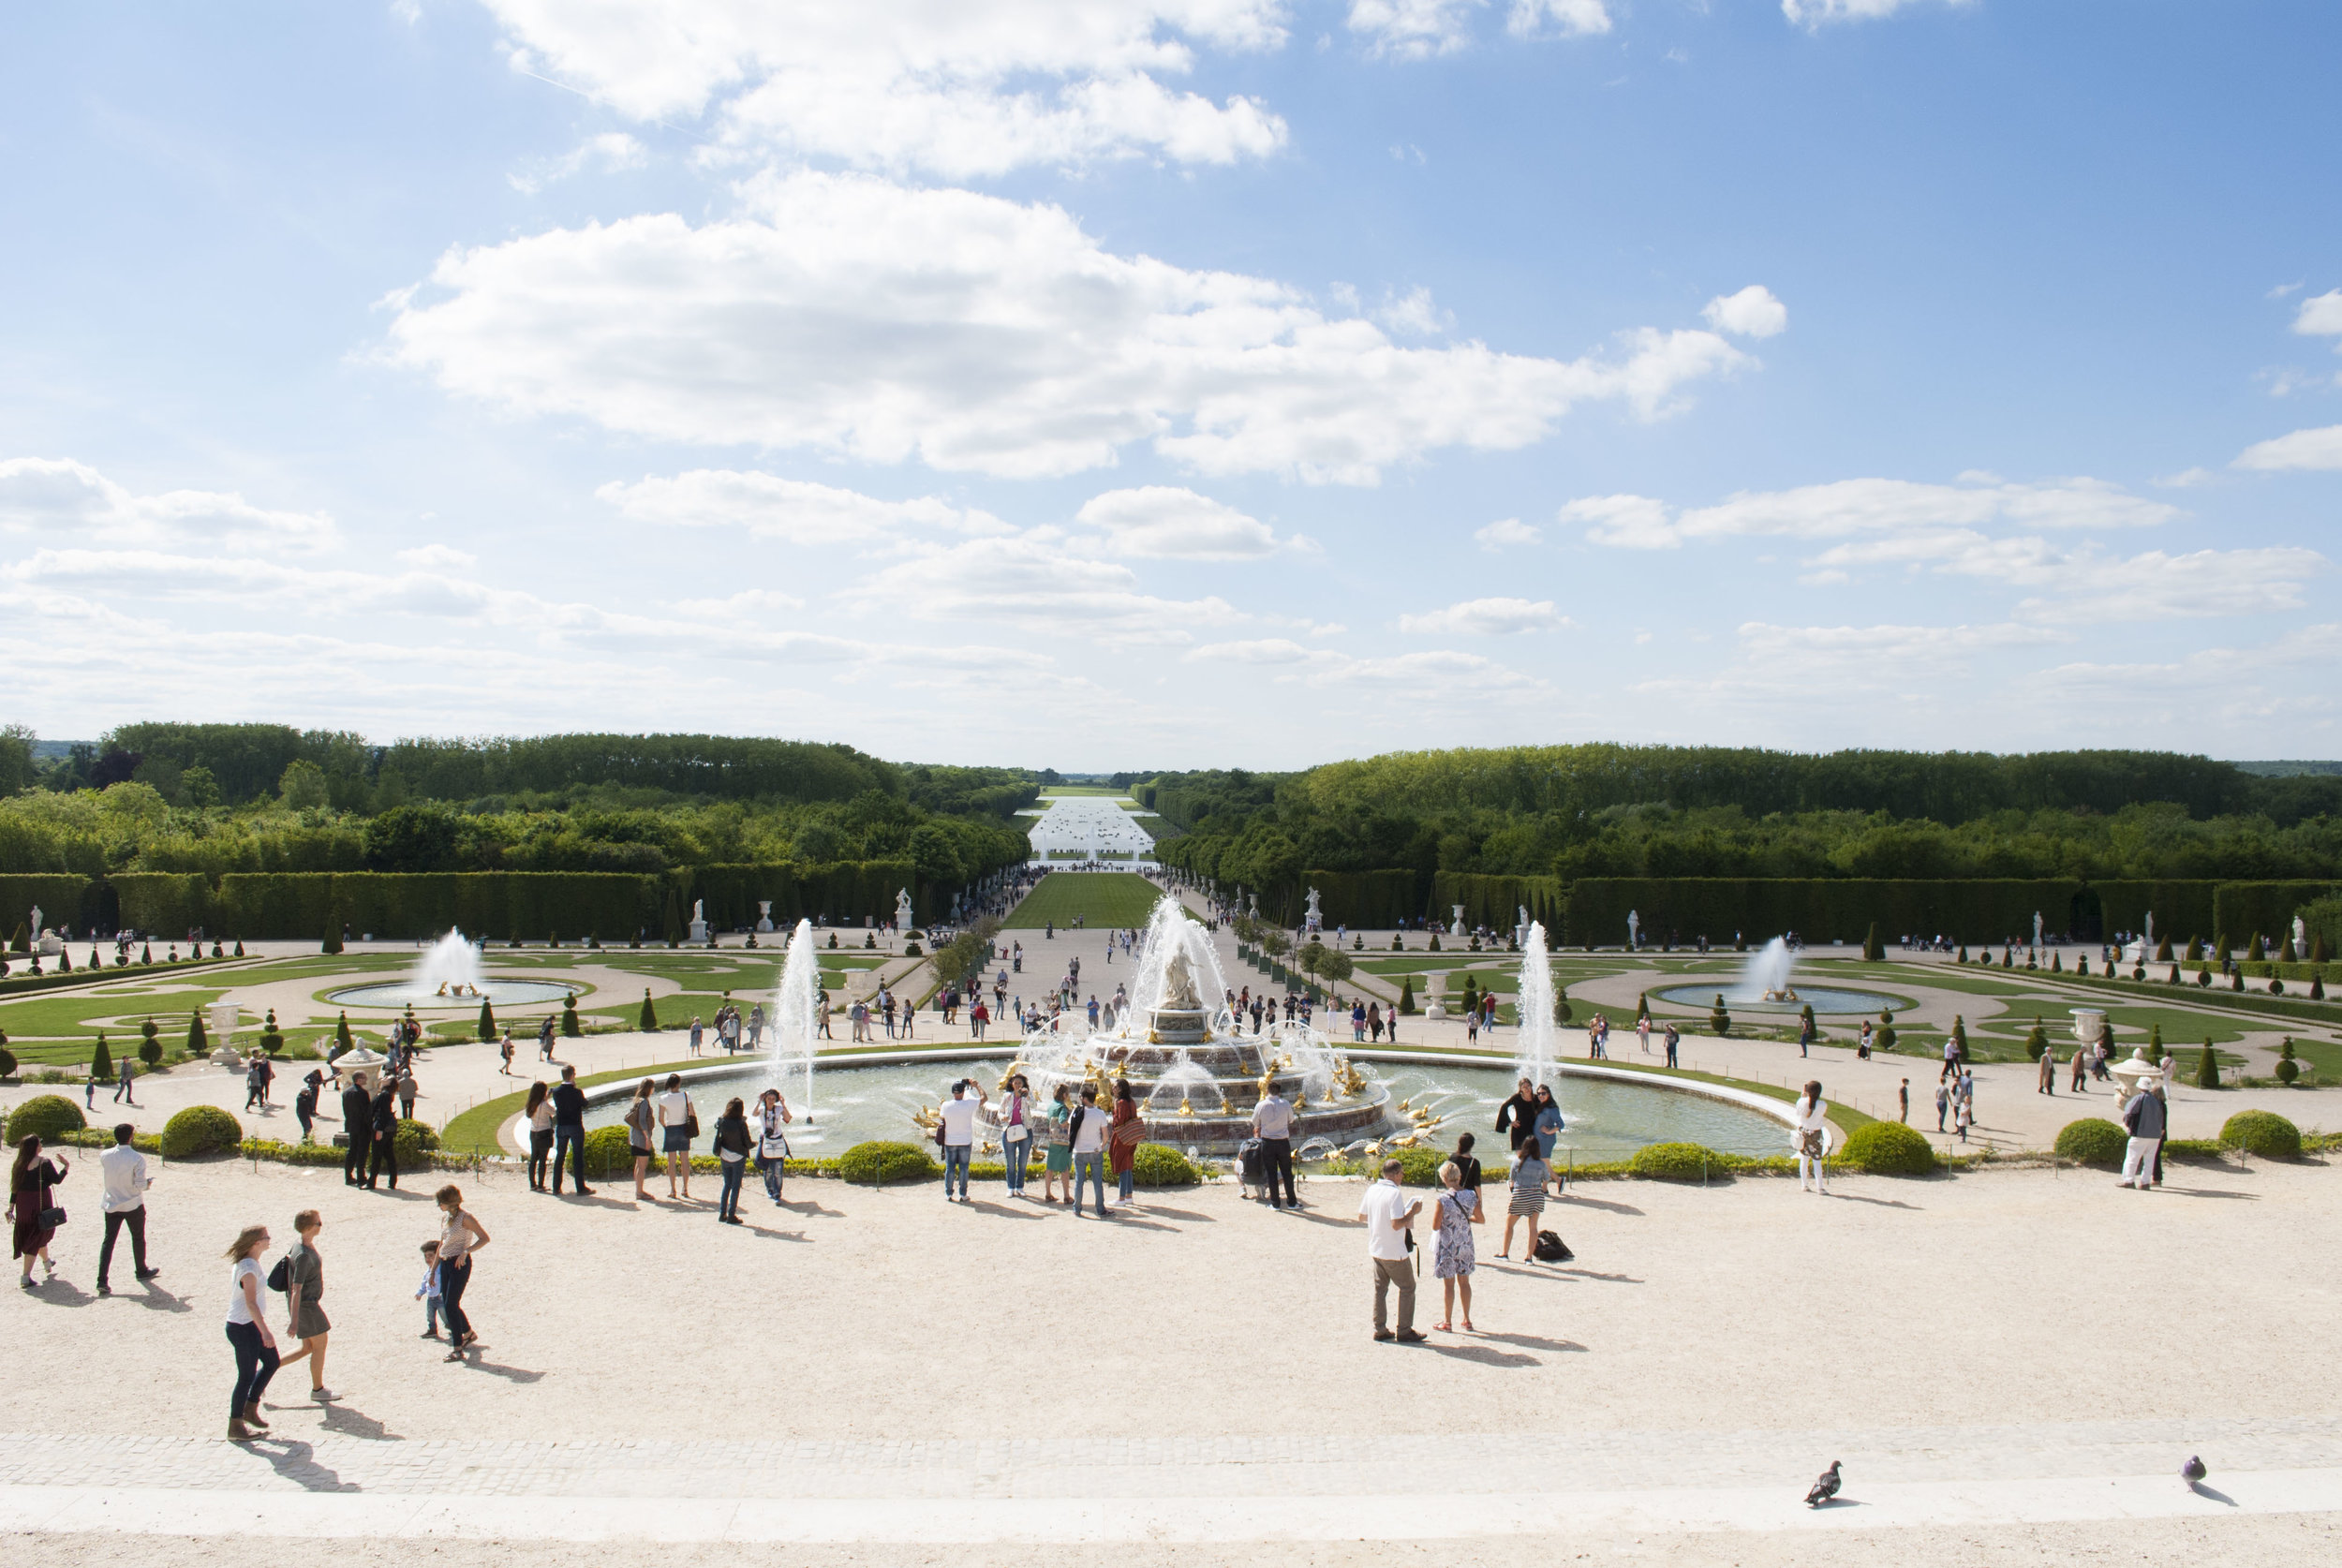 The Gardens of Versailles on a busy Sunday.